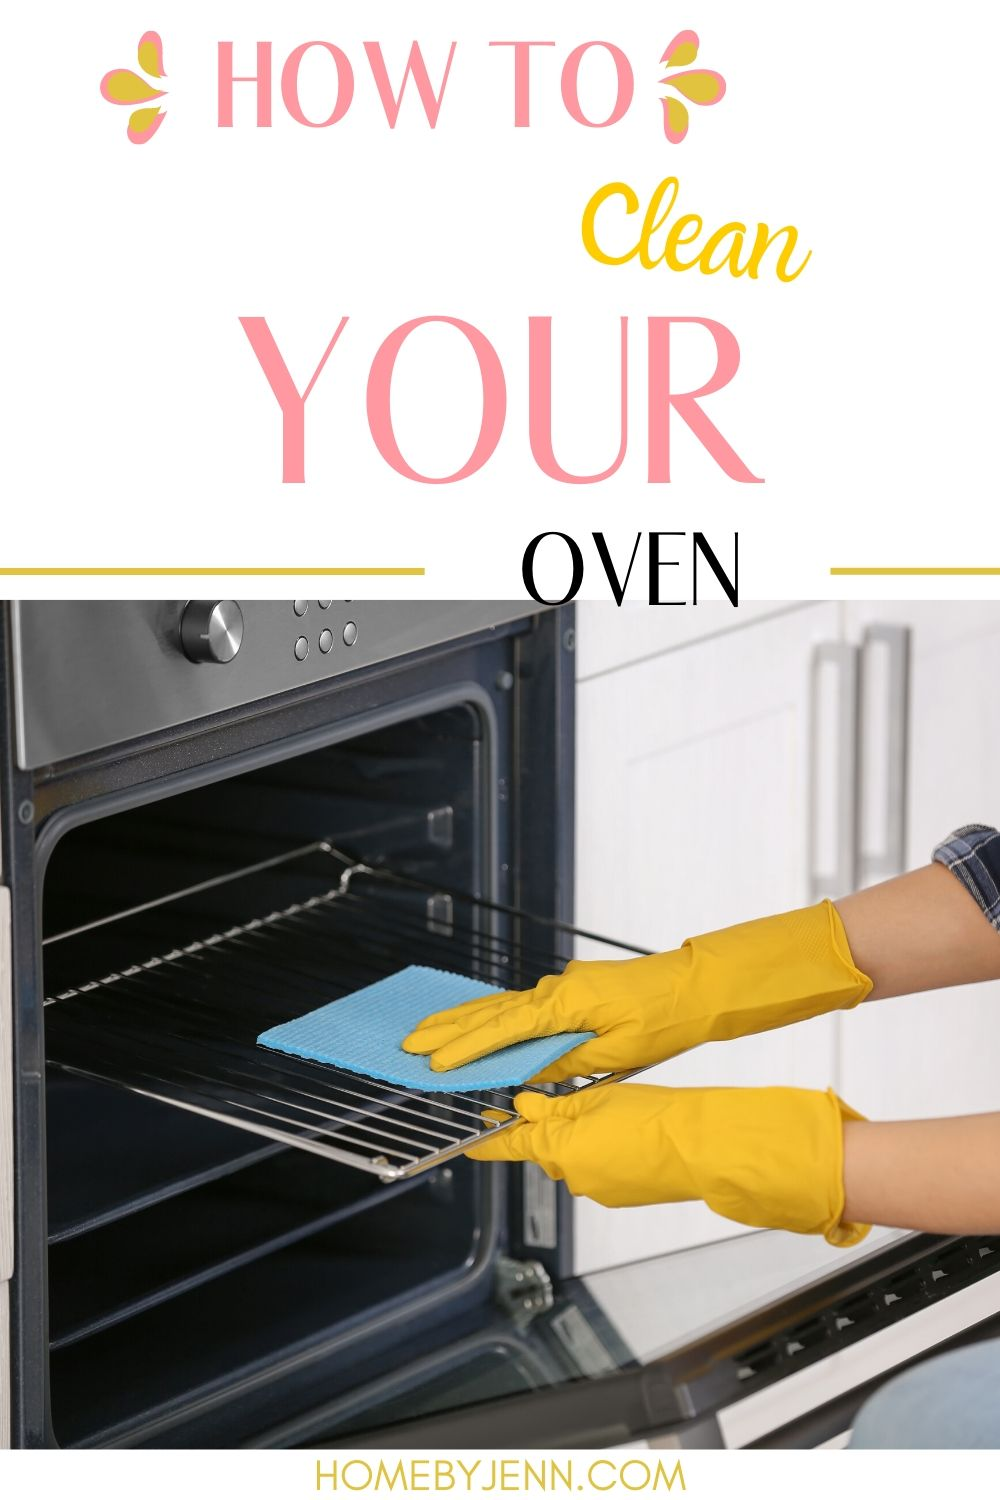 Learn how to clean your oven with these cleaning tips. You'll learn the best ways to clean your oven in different ways. Chose the best that will work for you. Download the free checklist to help you too. #cleaning #howtocleanaoven #cleaningtips #cleaningtipsandtricks #cleaninghacks via @homebyjenn